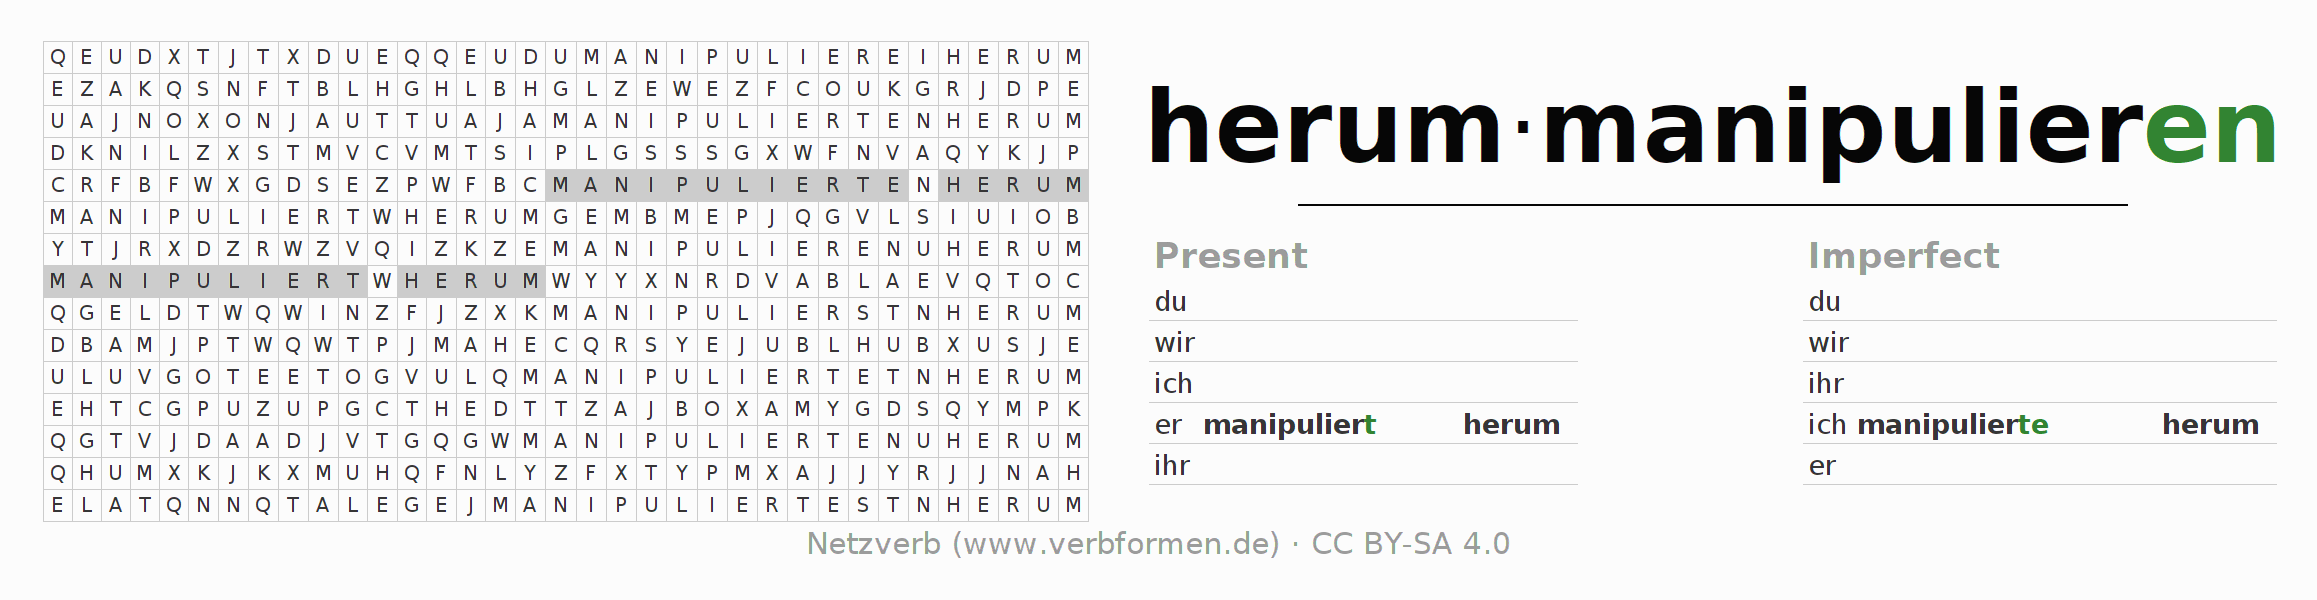 Word search puzzle for the conjugation of the verb herummanipulieren